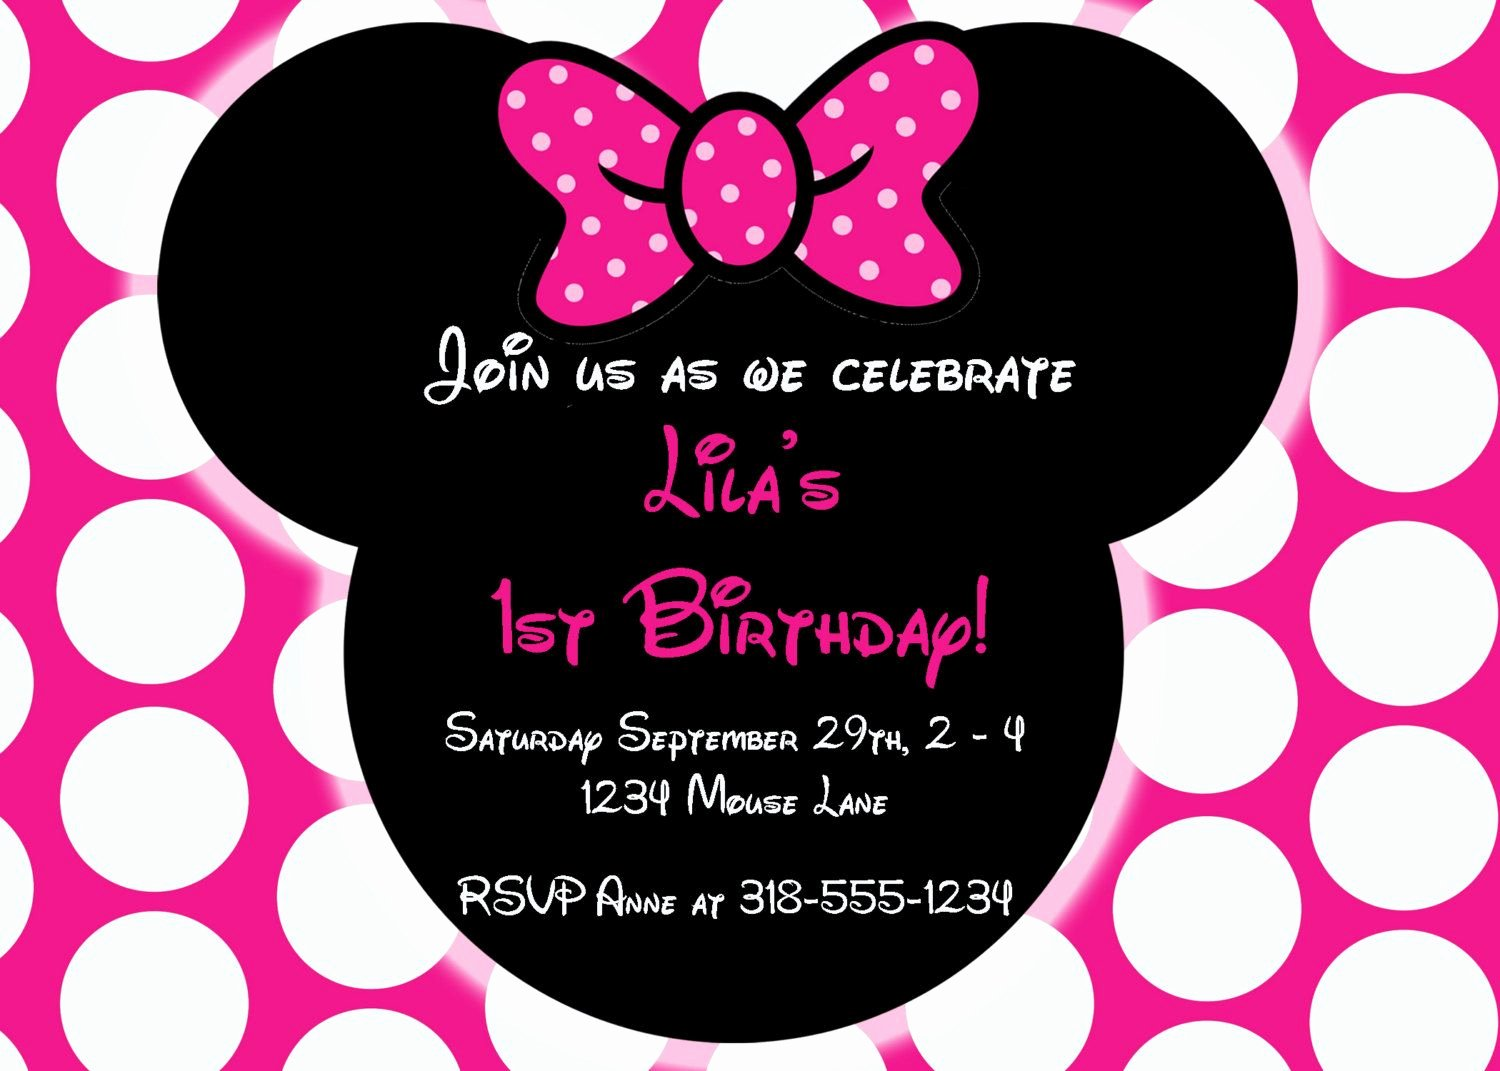 Minnie Mouse Personalized Invitations Best Of Free Editable Minnie Mouse Birthday Invitations Minnie Mouse Sba Pinterest